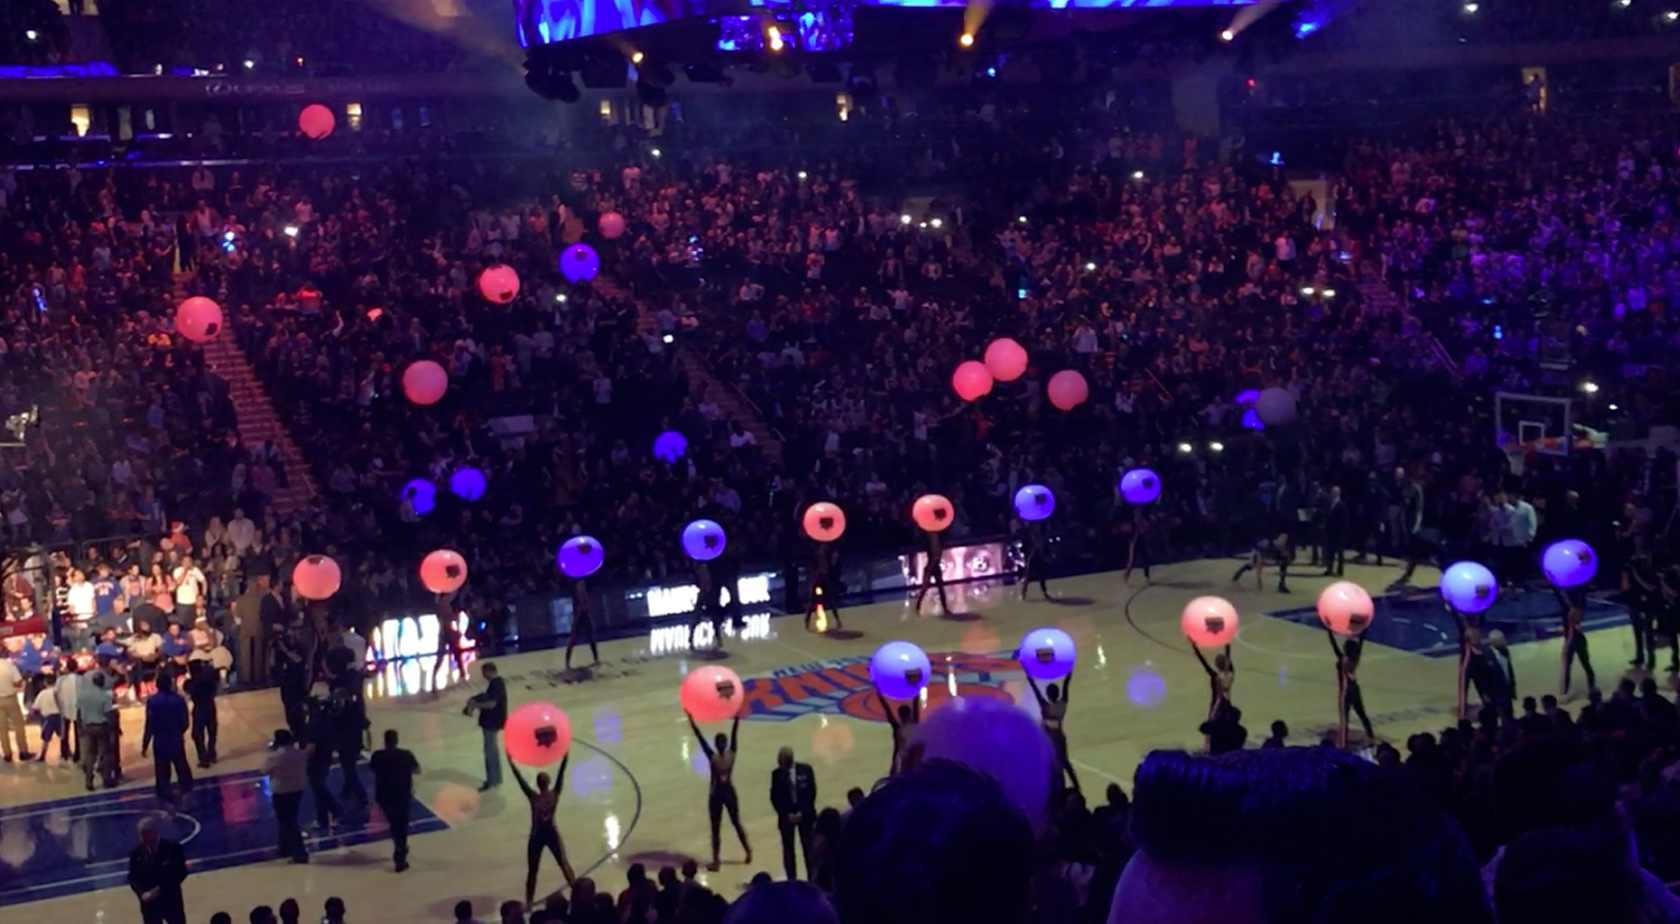 NY Knicks Feature LED Light Show At Madison Square Garden